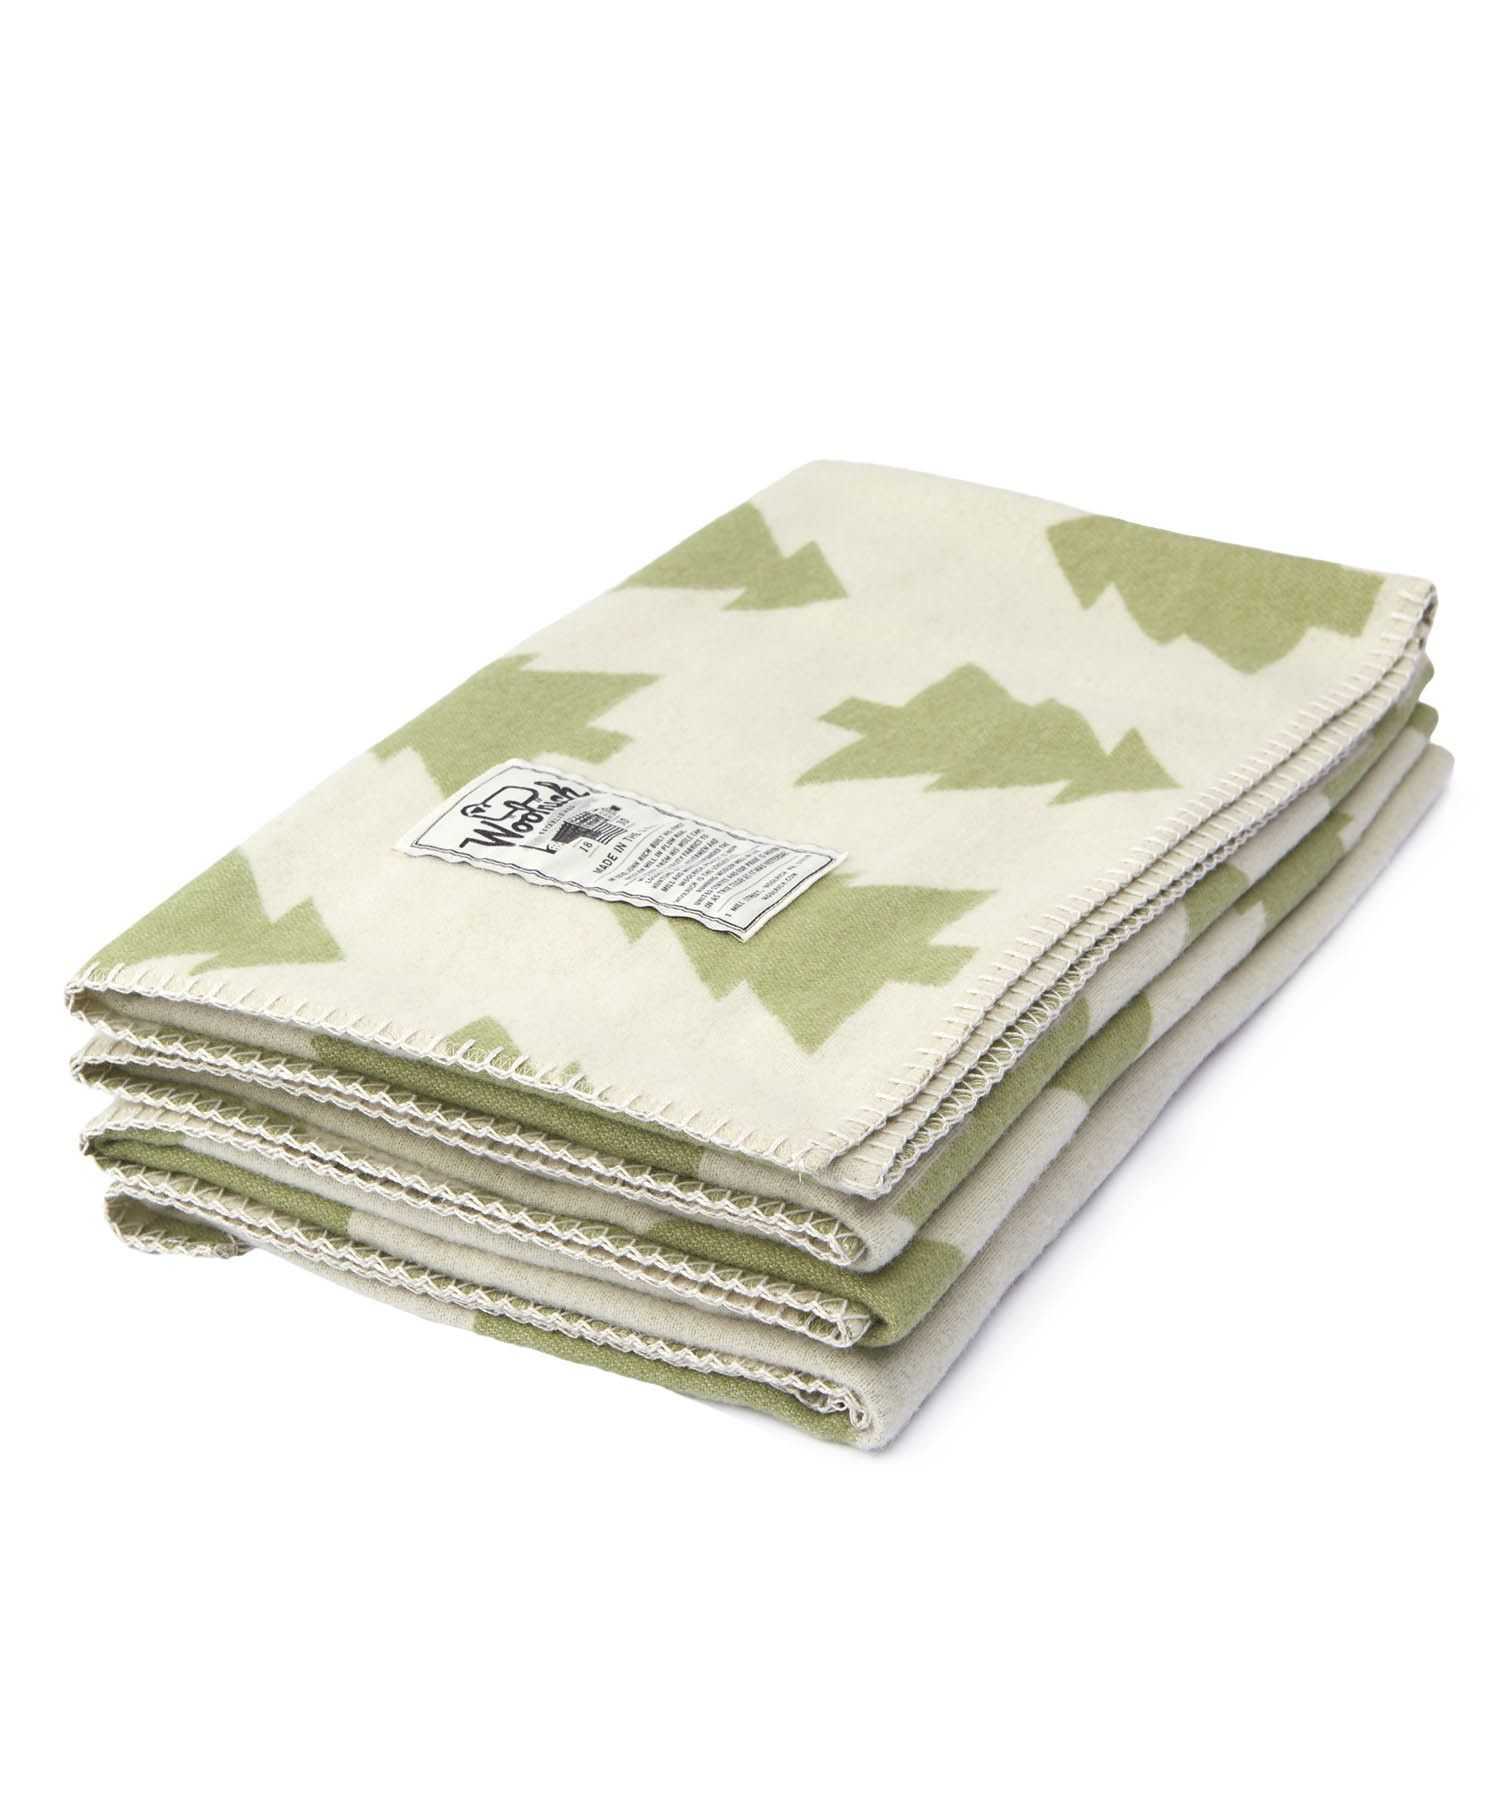 190 Forest Glen Soft Wool Blanket By Woolrich The Original Outdoor